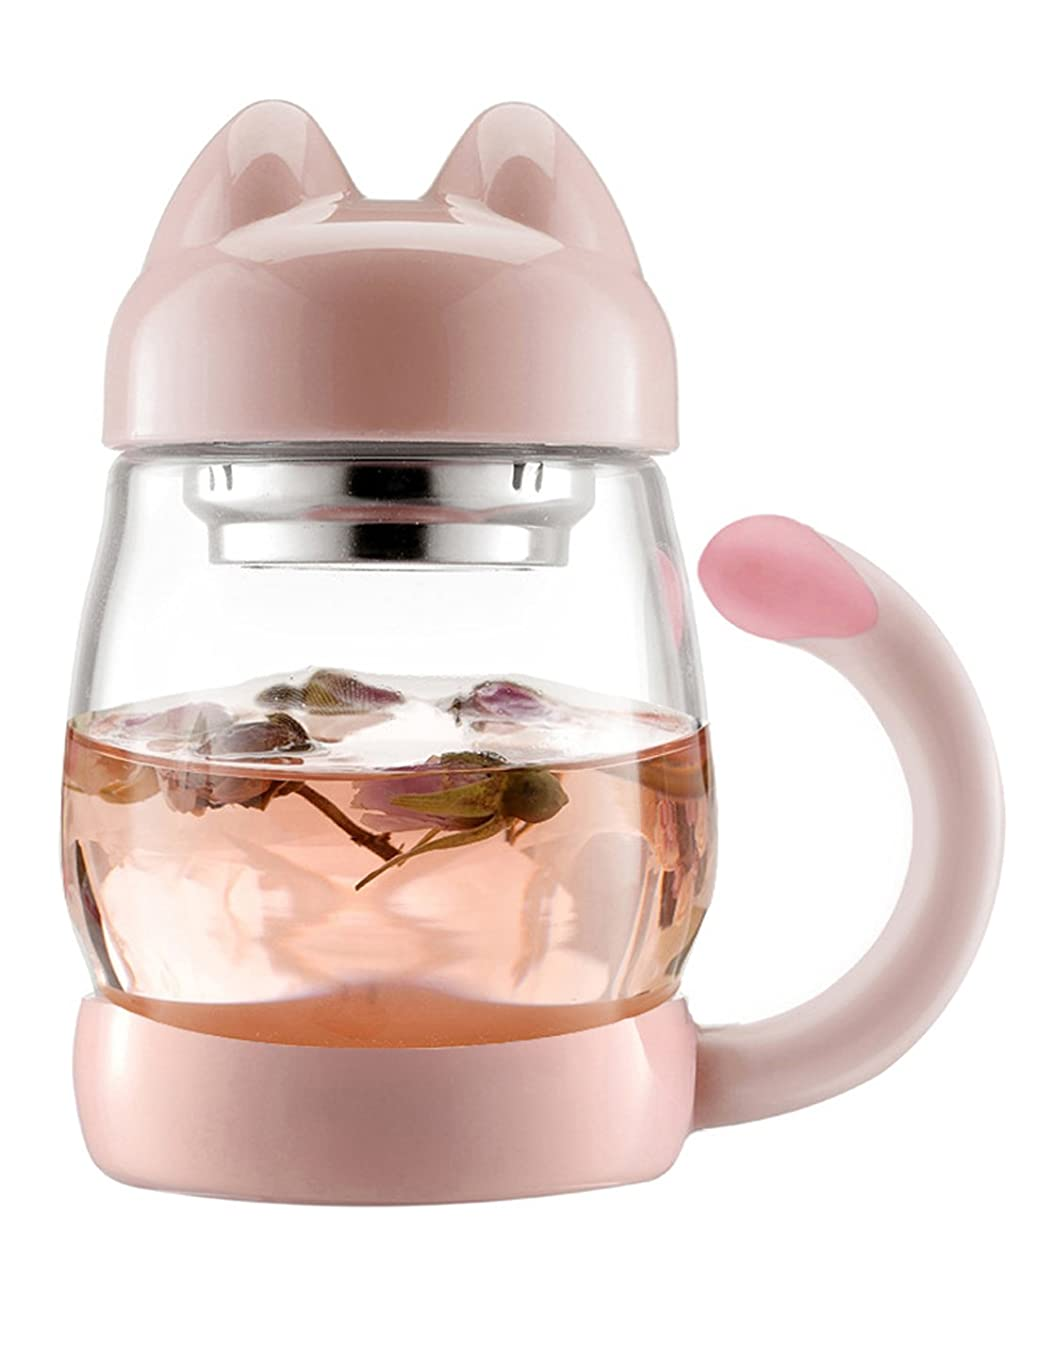 BZY1 14oz Glass Tea Cup with a Lid & Strainer Portable Cute Cat Tail Heat Resistant Mugs Free with a Coasters